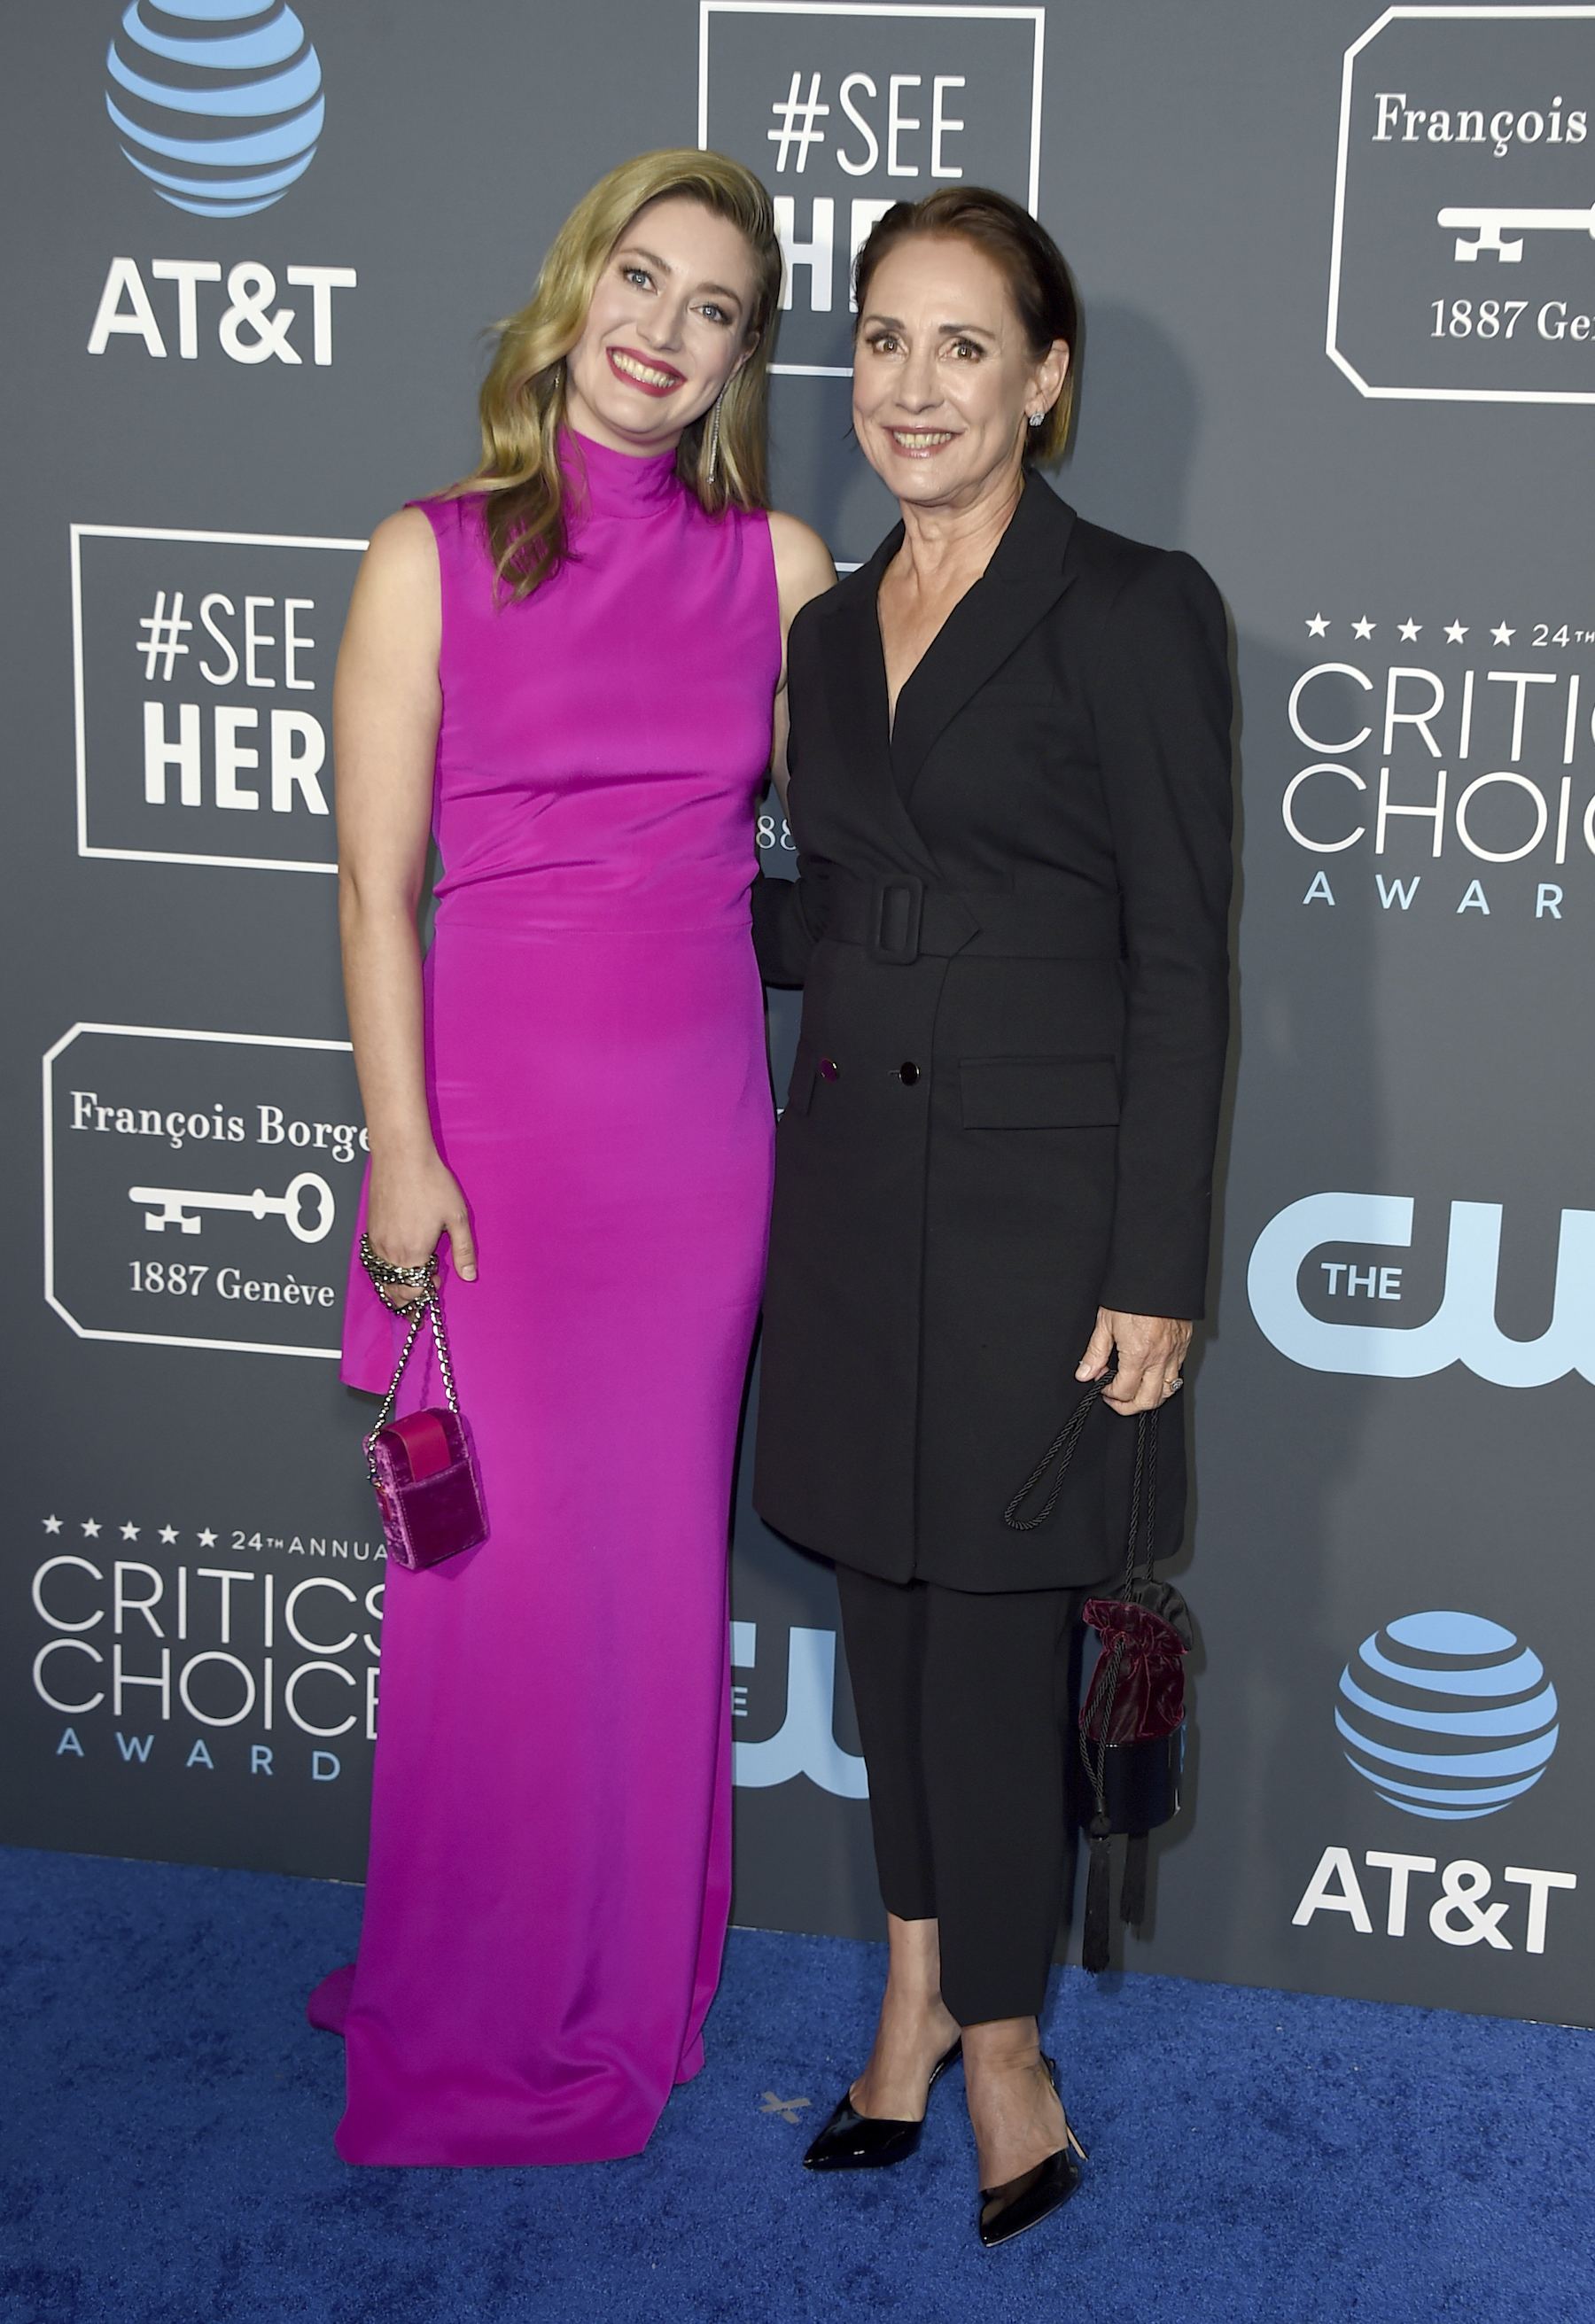 <div class='meta'><div class='origin-logo' data-origin='AP'></div><span class='caption-text' data-credit='Jordan Strauss/Invision/AP'>Laurie Metcalf, right, and her daughter Zoe Perry arrive at the 24th annual Critics' Choice Awards on Sunday, Jan. 13, 2019, at the Barker Hangar in Santa Monica, Calif.</span></div>